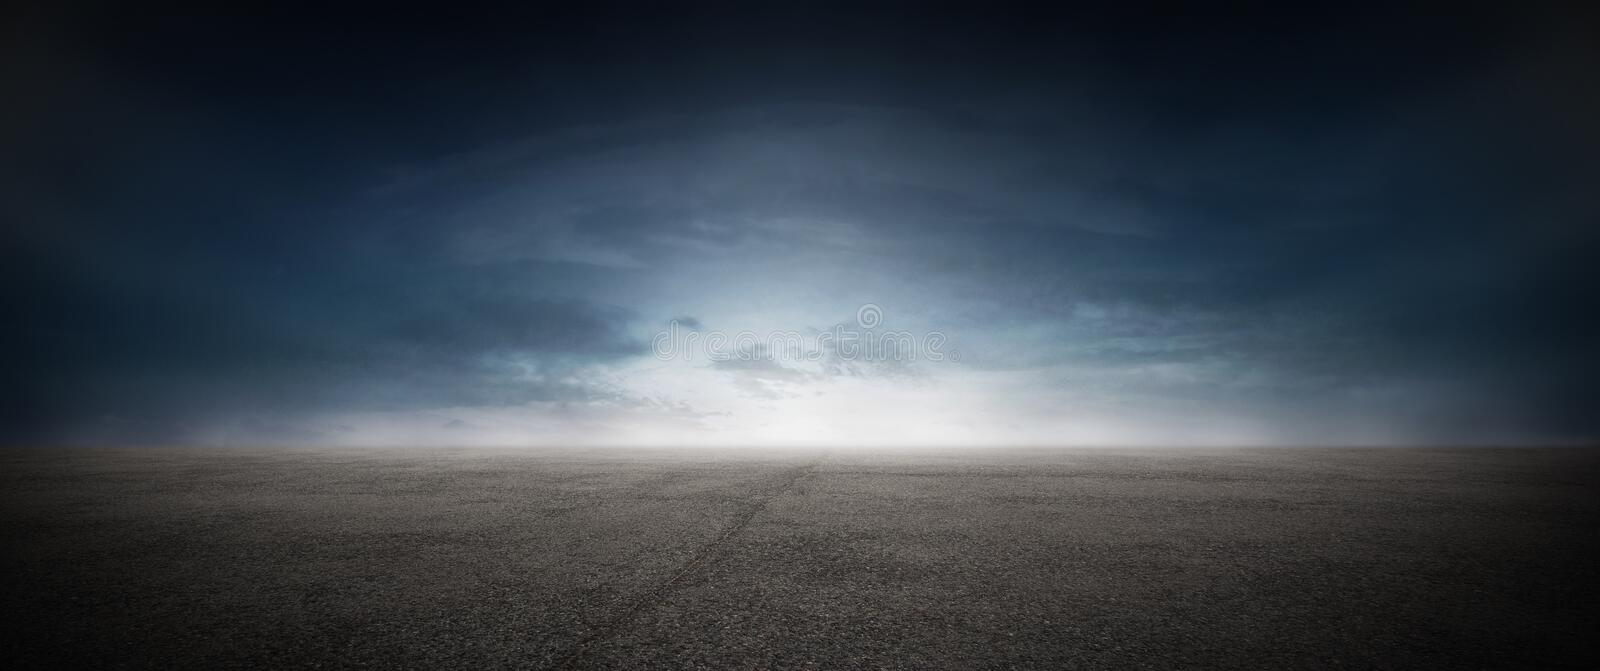 Dark Concrete Street Asphalt Floor Sunset Horizon stock images